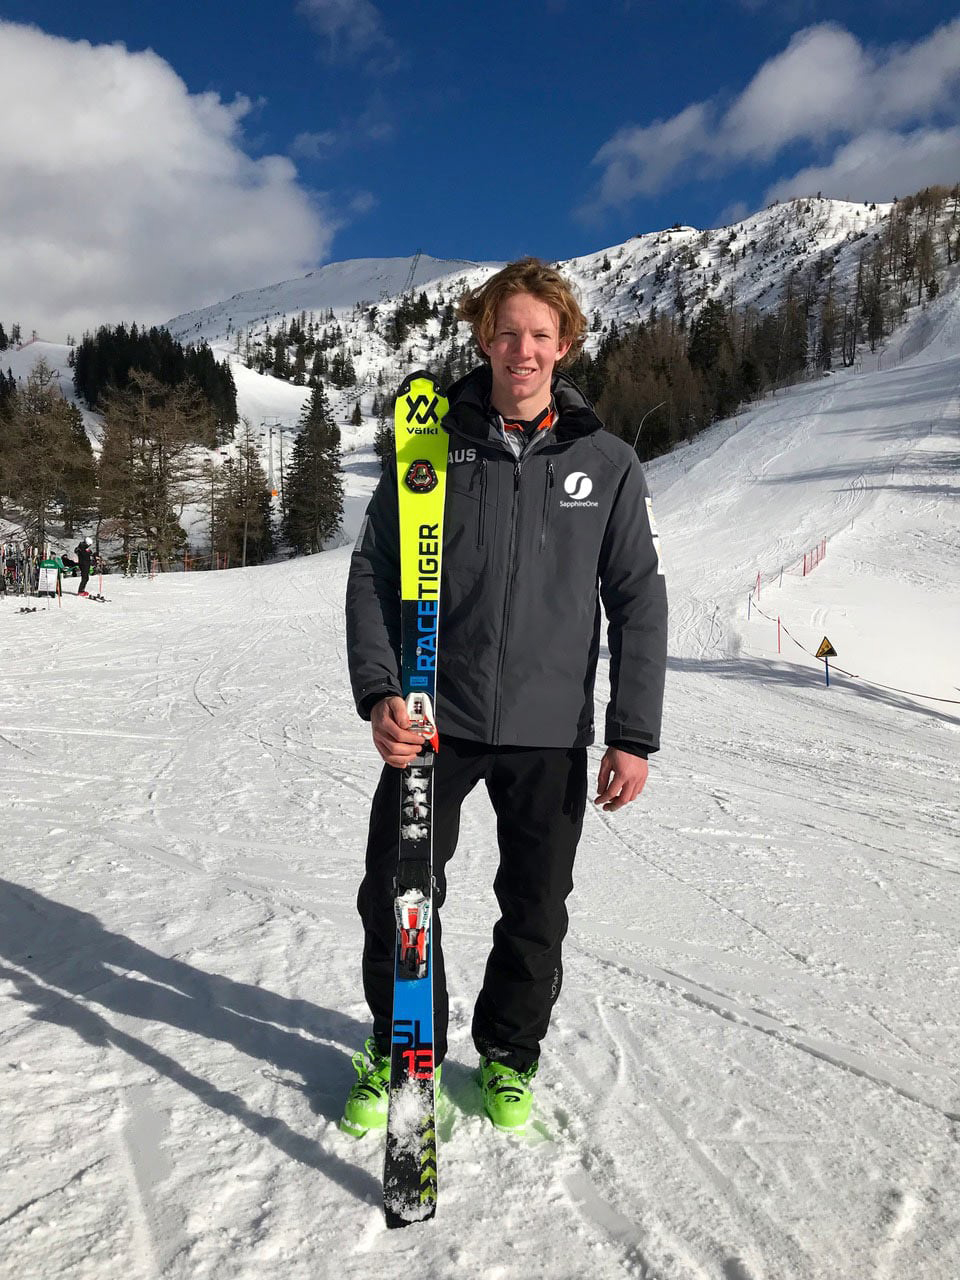 Bondi Teen Sponsored by SapphireOne for the World Junior Championship Alpine Skiing in Davos